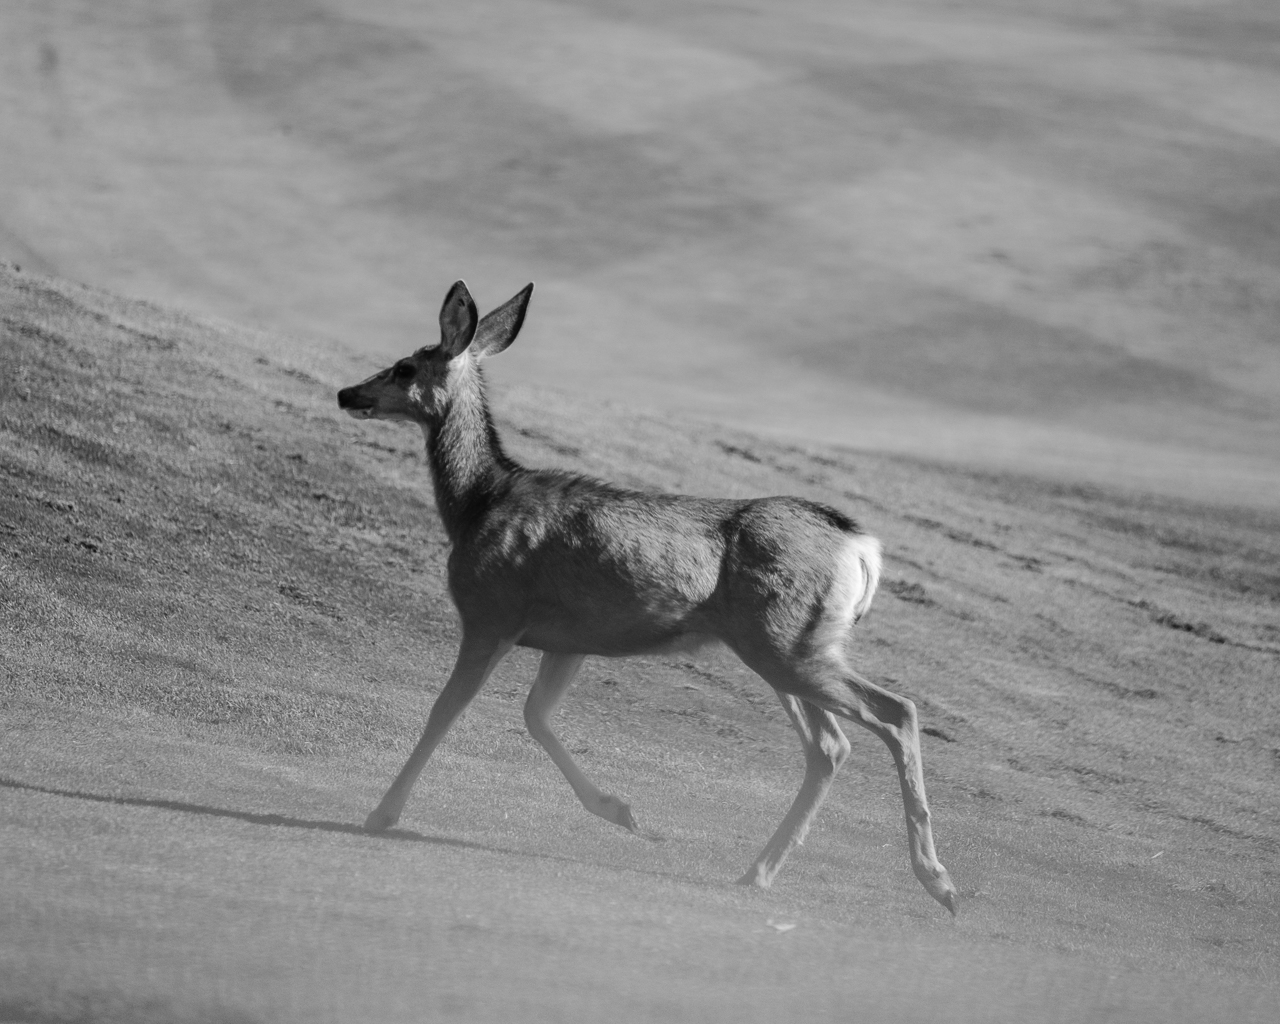 Day 196 - 365 Day B&W Photo Challenge - Mule Deer decided to cross the golf course. - Fuji X-T3, XF 50-140mm f/2.8, Acros Film Simulation